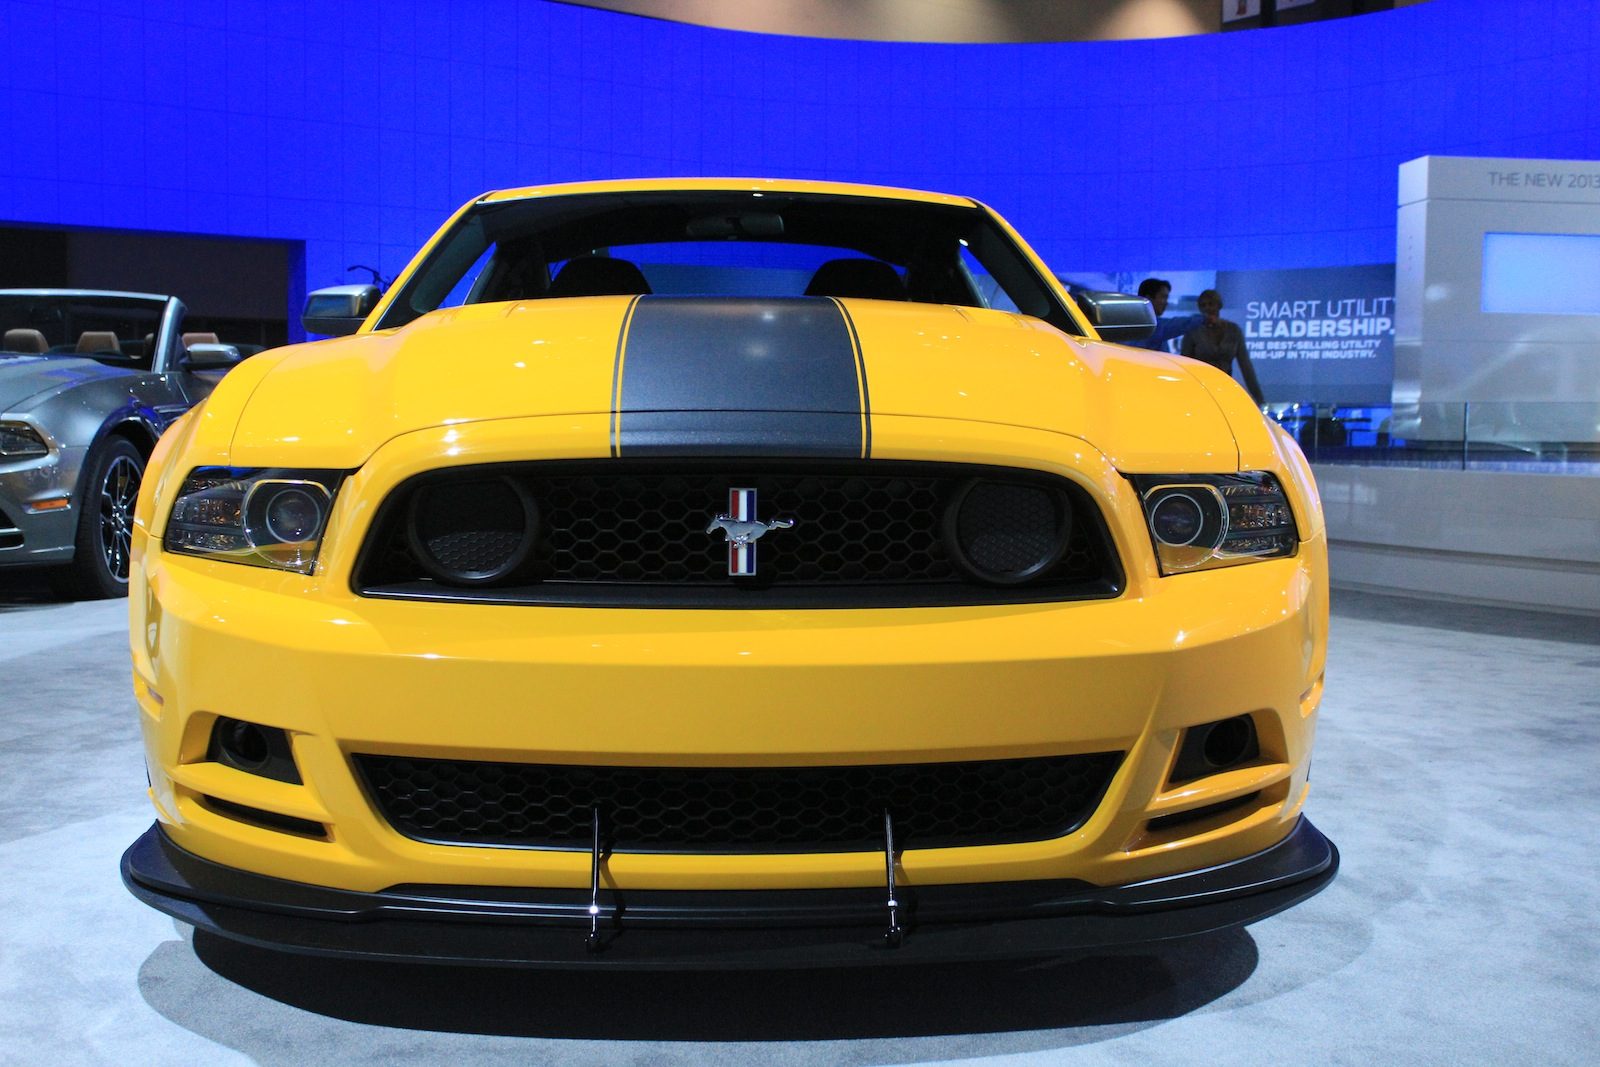 2013 Ford Mustang Boss 302 Live Photos 2011 La Auto Show 1970 For Sale